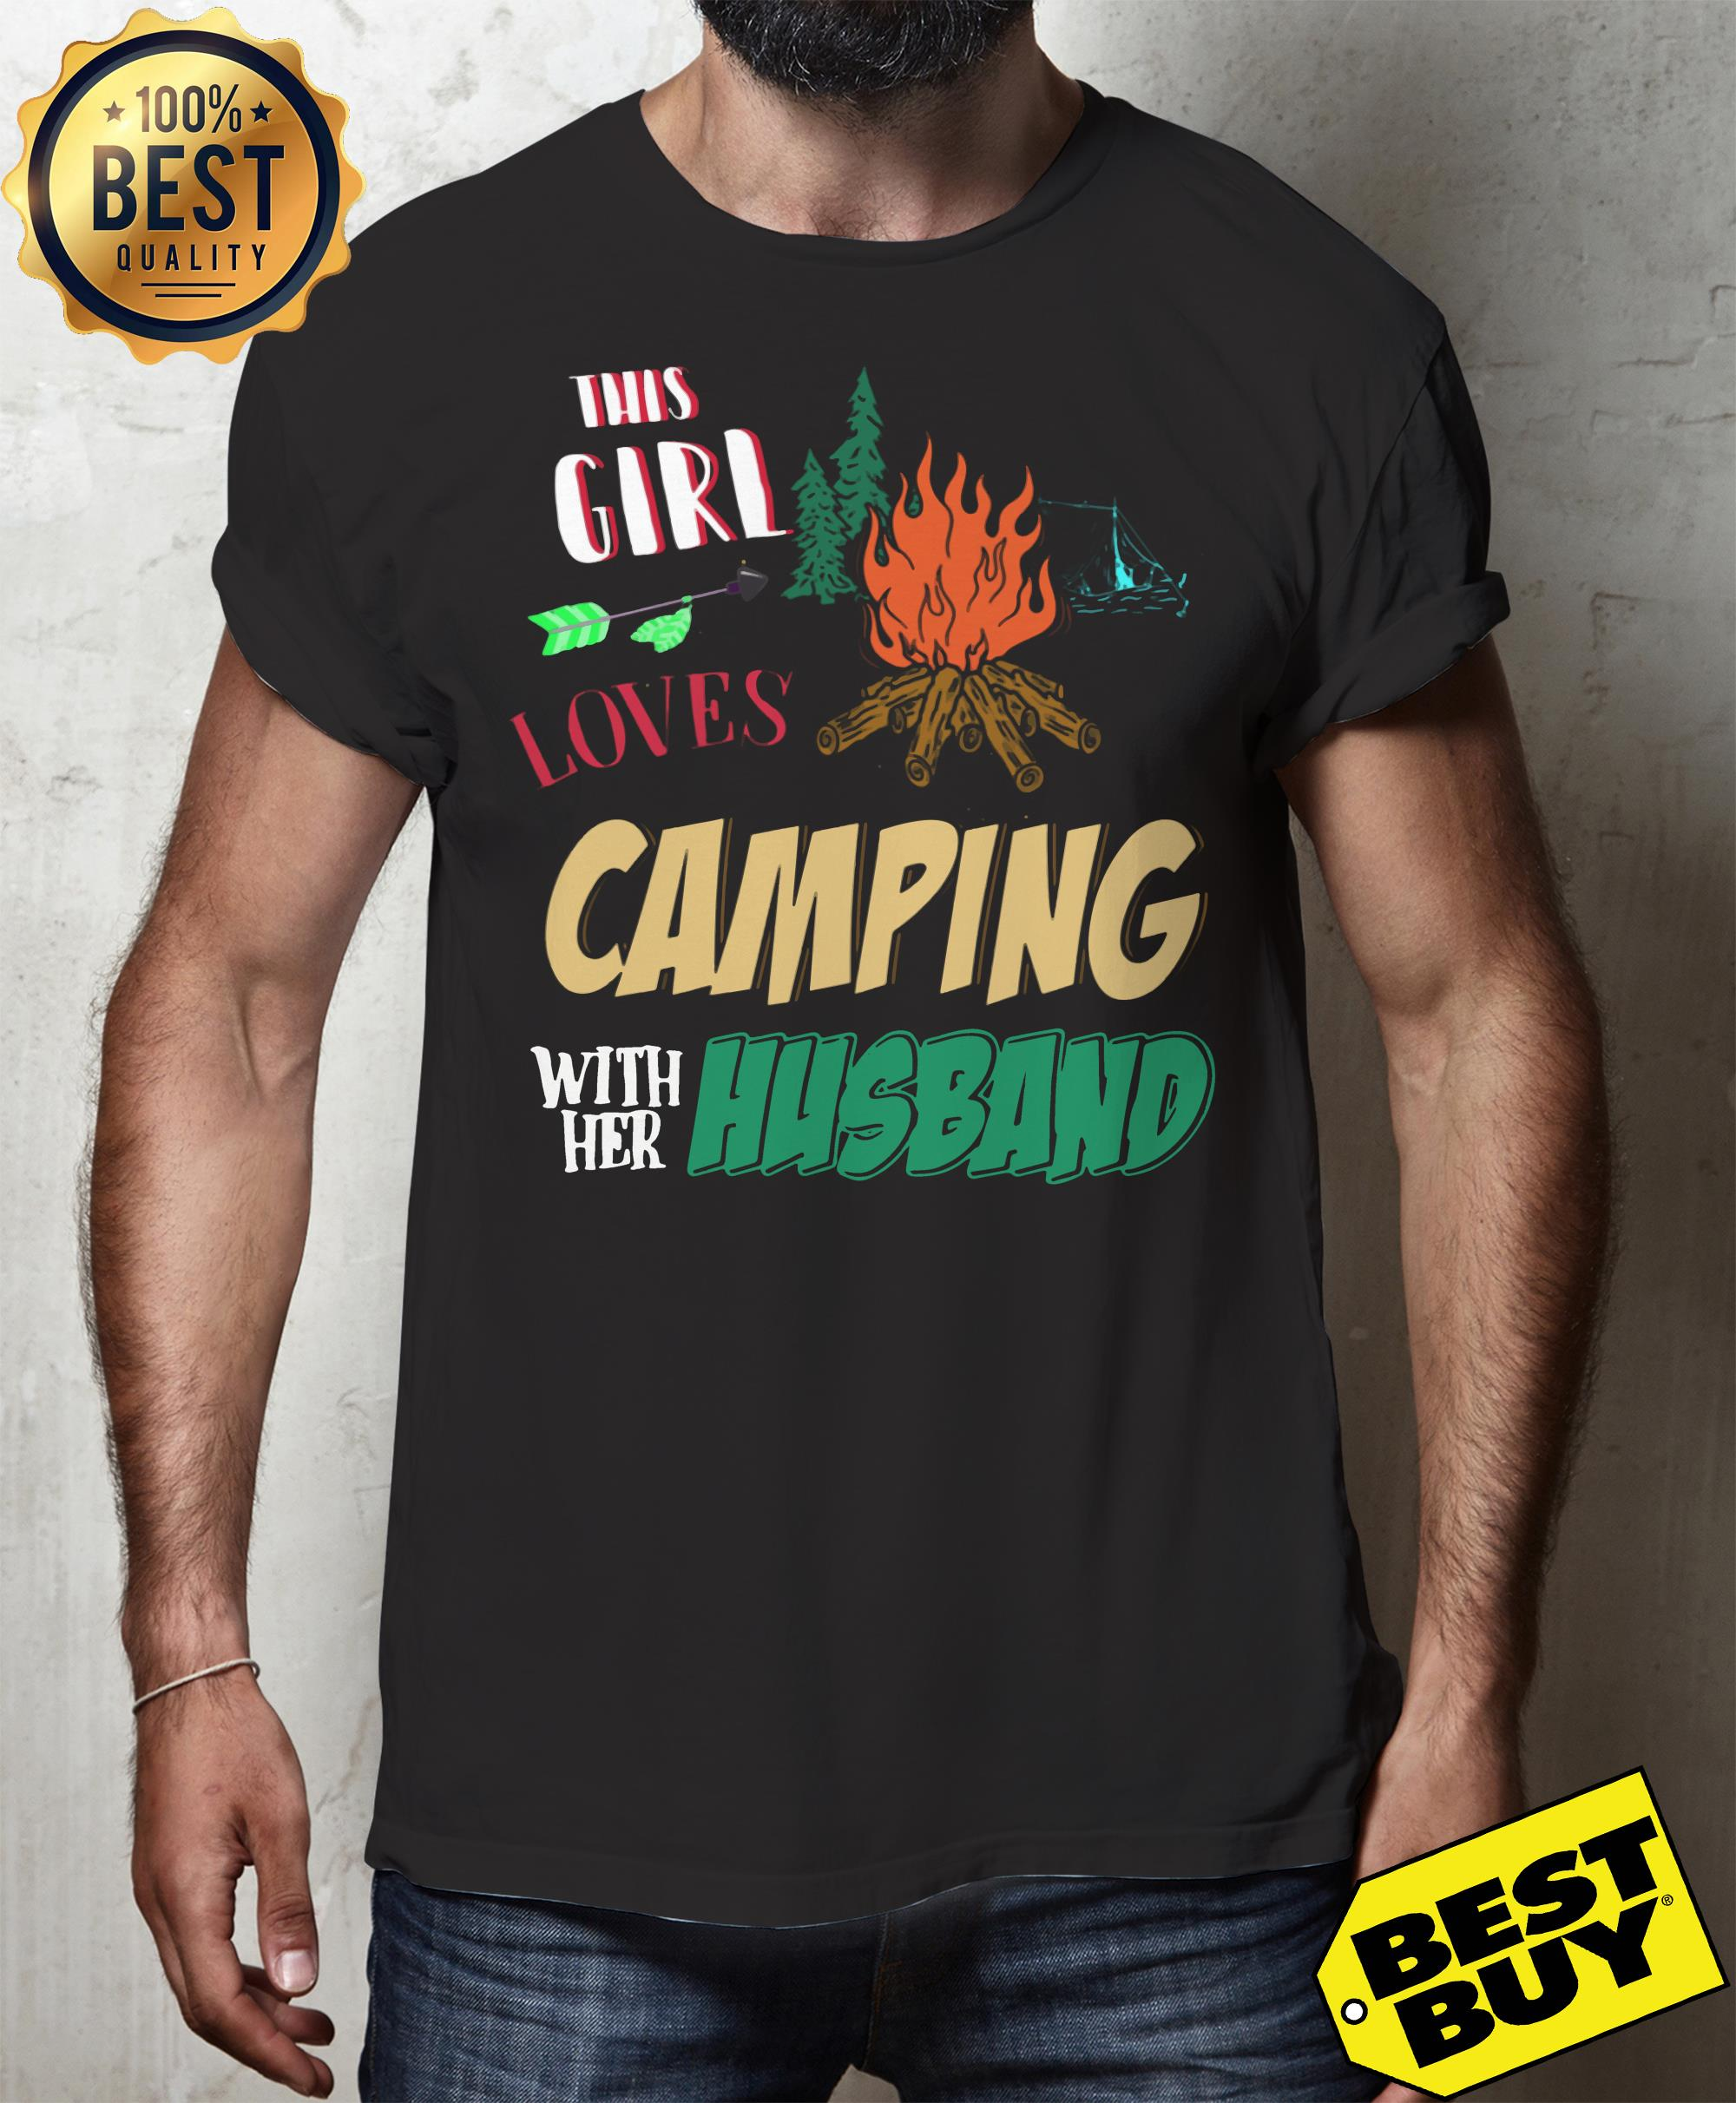 This Girl Loves Camping With Her Husband funny Shirt